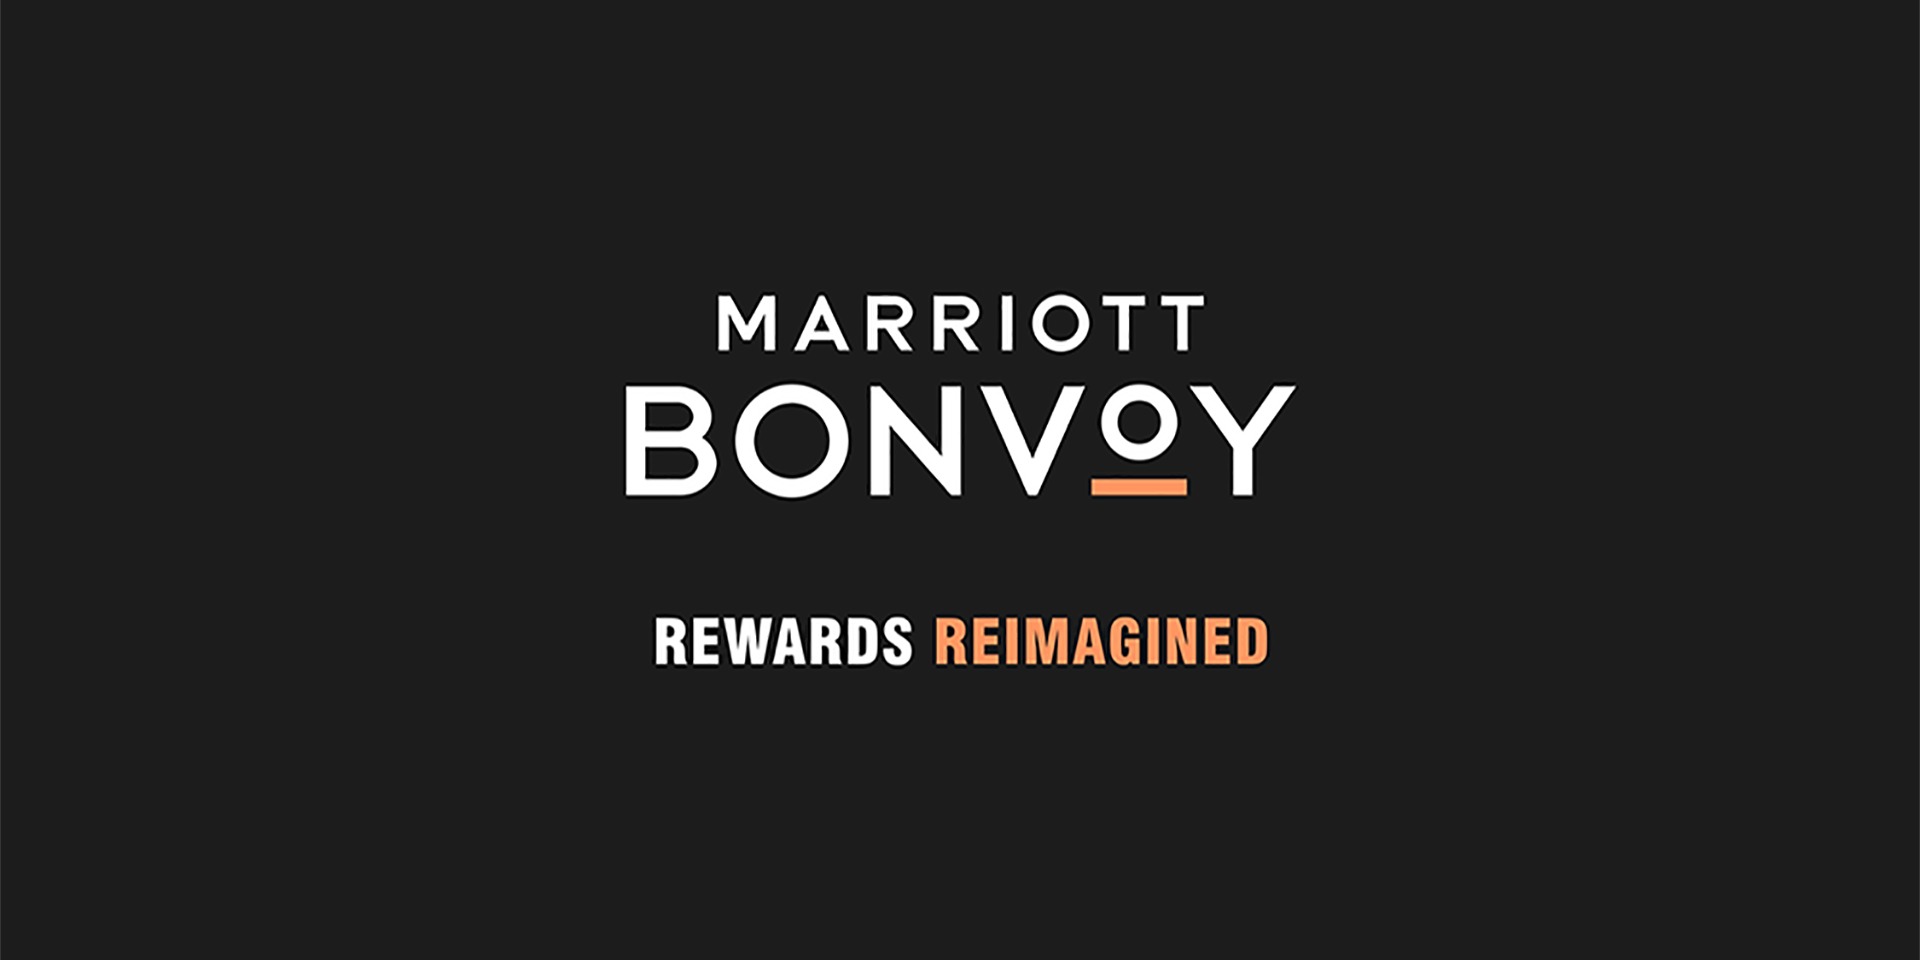 Marriott Bonvoy kicks off global marketing campaign to introduce new travel program